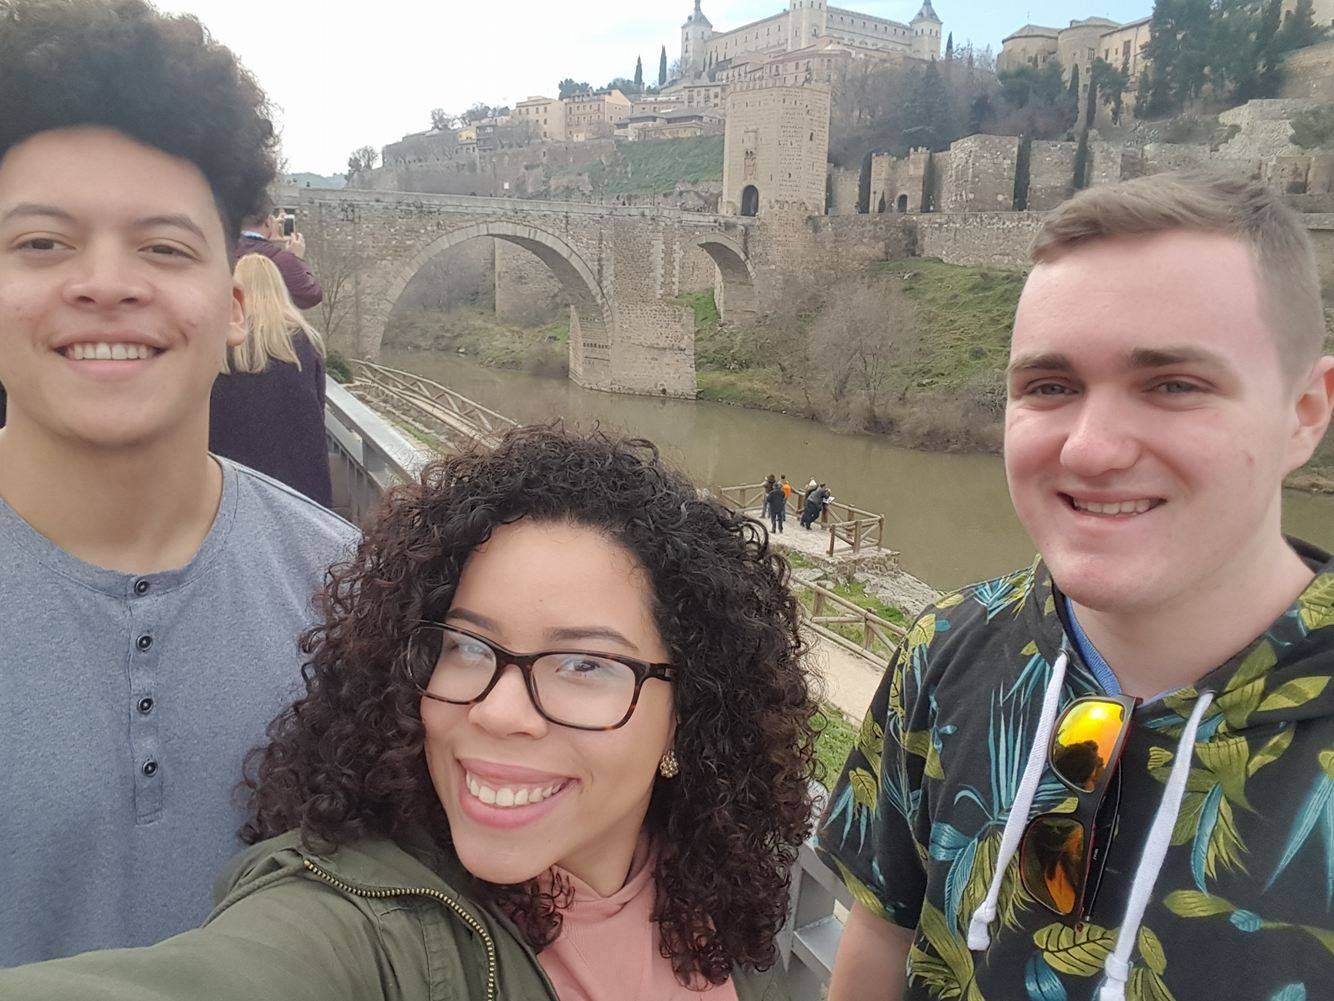 John Kenney, Paola Rivera Villafañe, and Tristan Beaulieu in Toledo, Spain